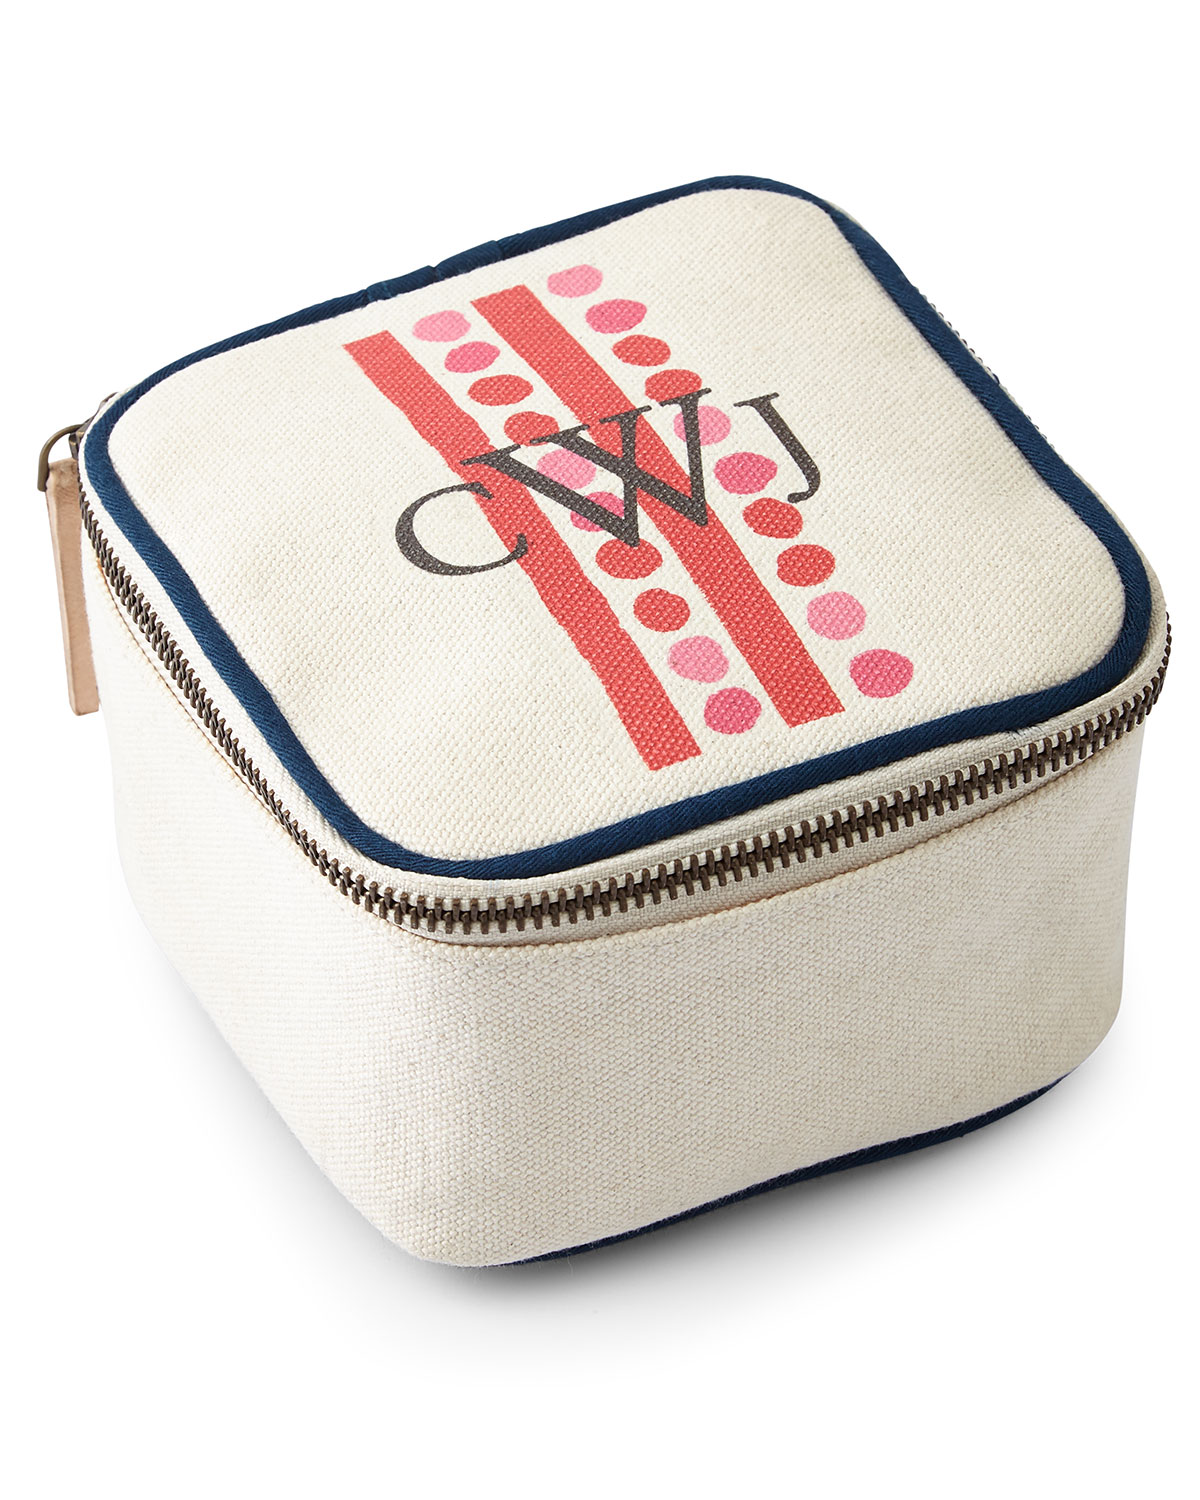 Dots & Stripes Red Travel Jewelry Box, Ivory